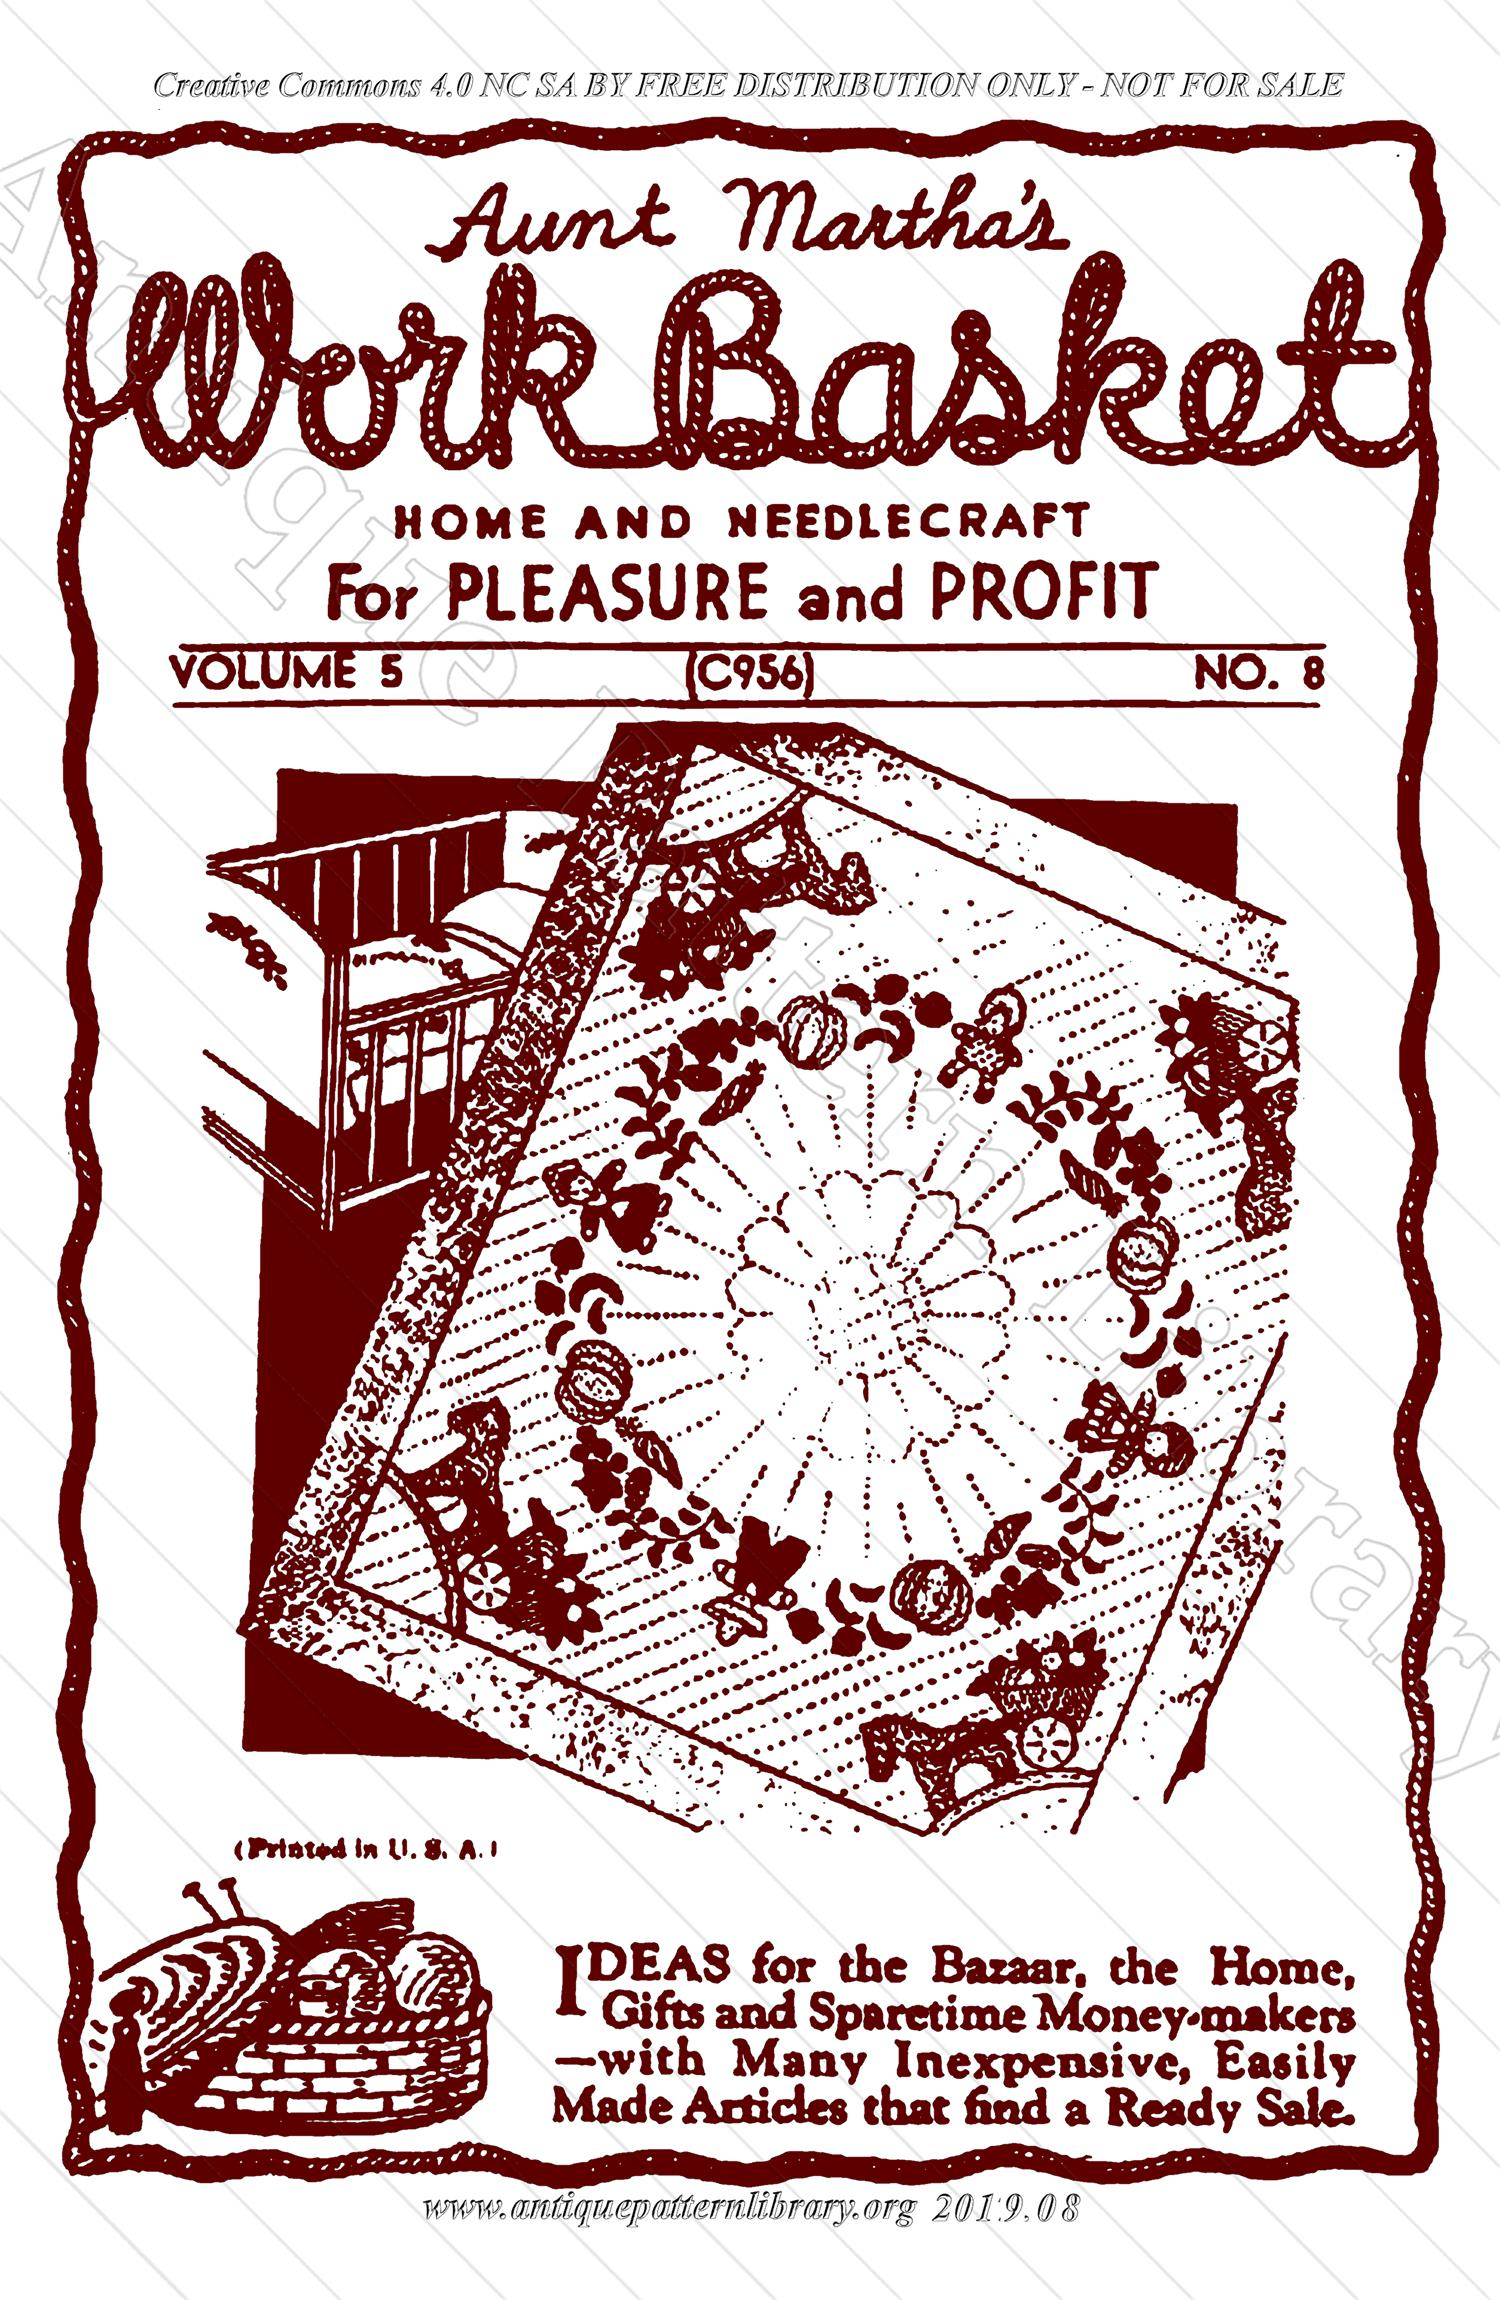 I-SG006 The Workbasket Vol. 5 No. 8